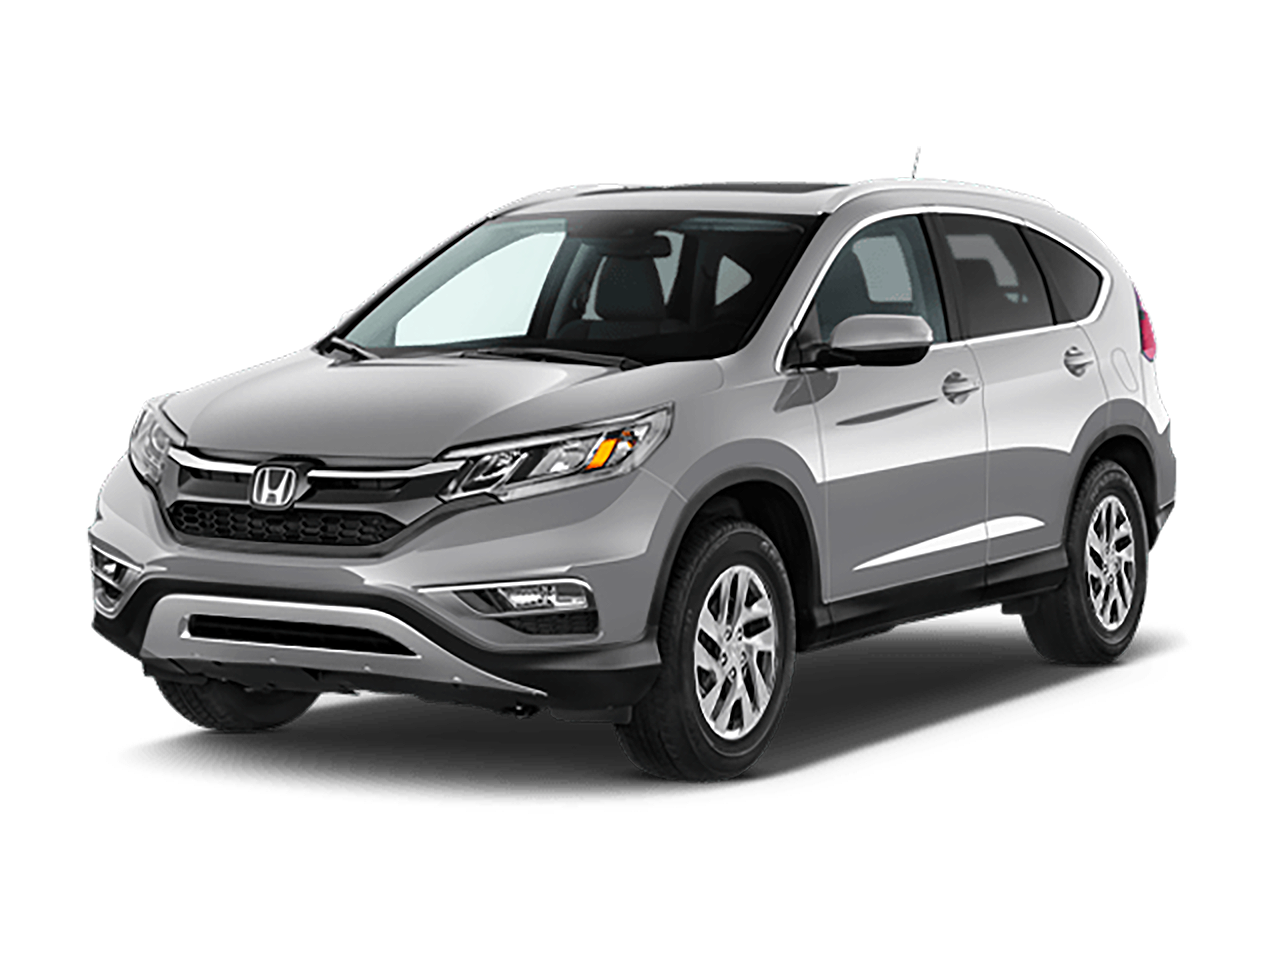 2016 Honda Cr V Dealer Serving Los Angeles Galpin Honda